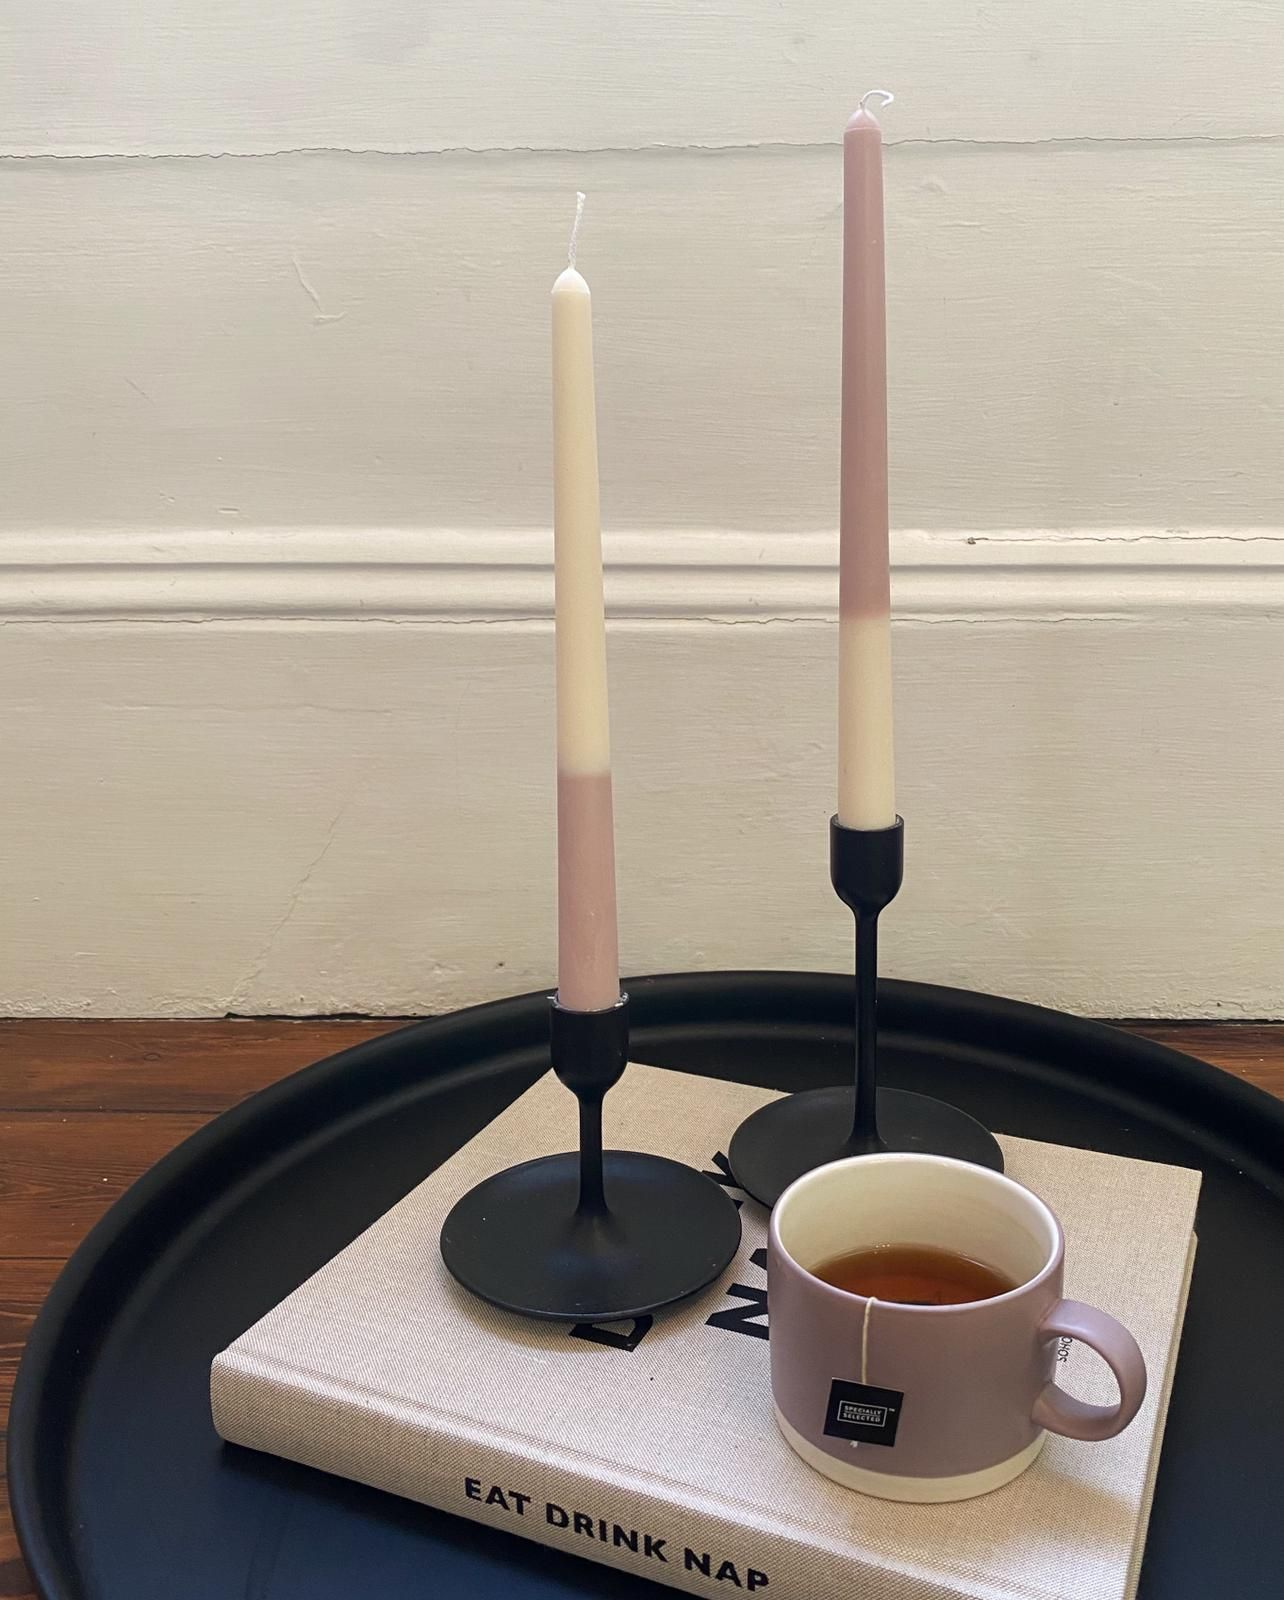 Funky Double Stripe Drip Candle - 2 Taper Candles in one pack (please note: These are HANDMADE, no two are exactly the same)